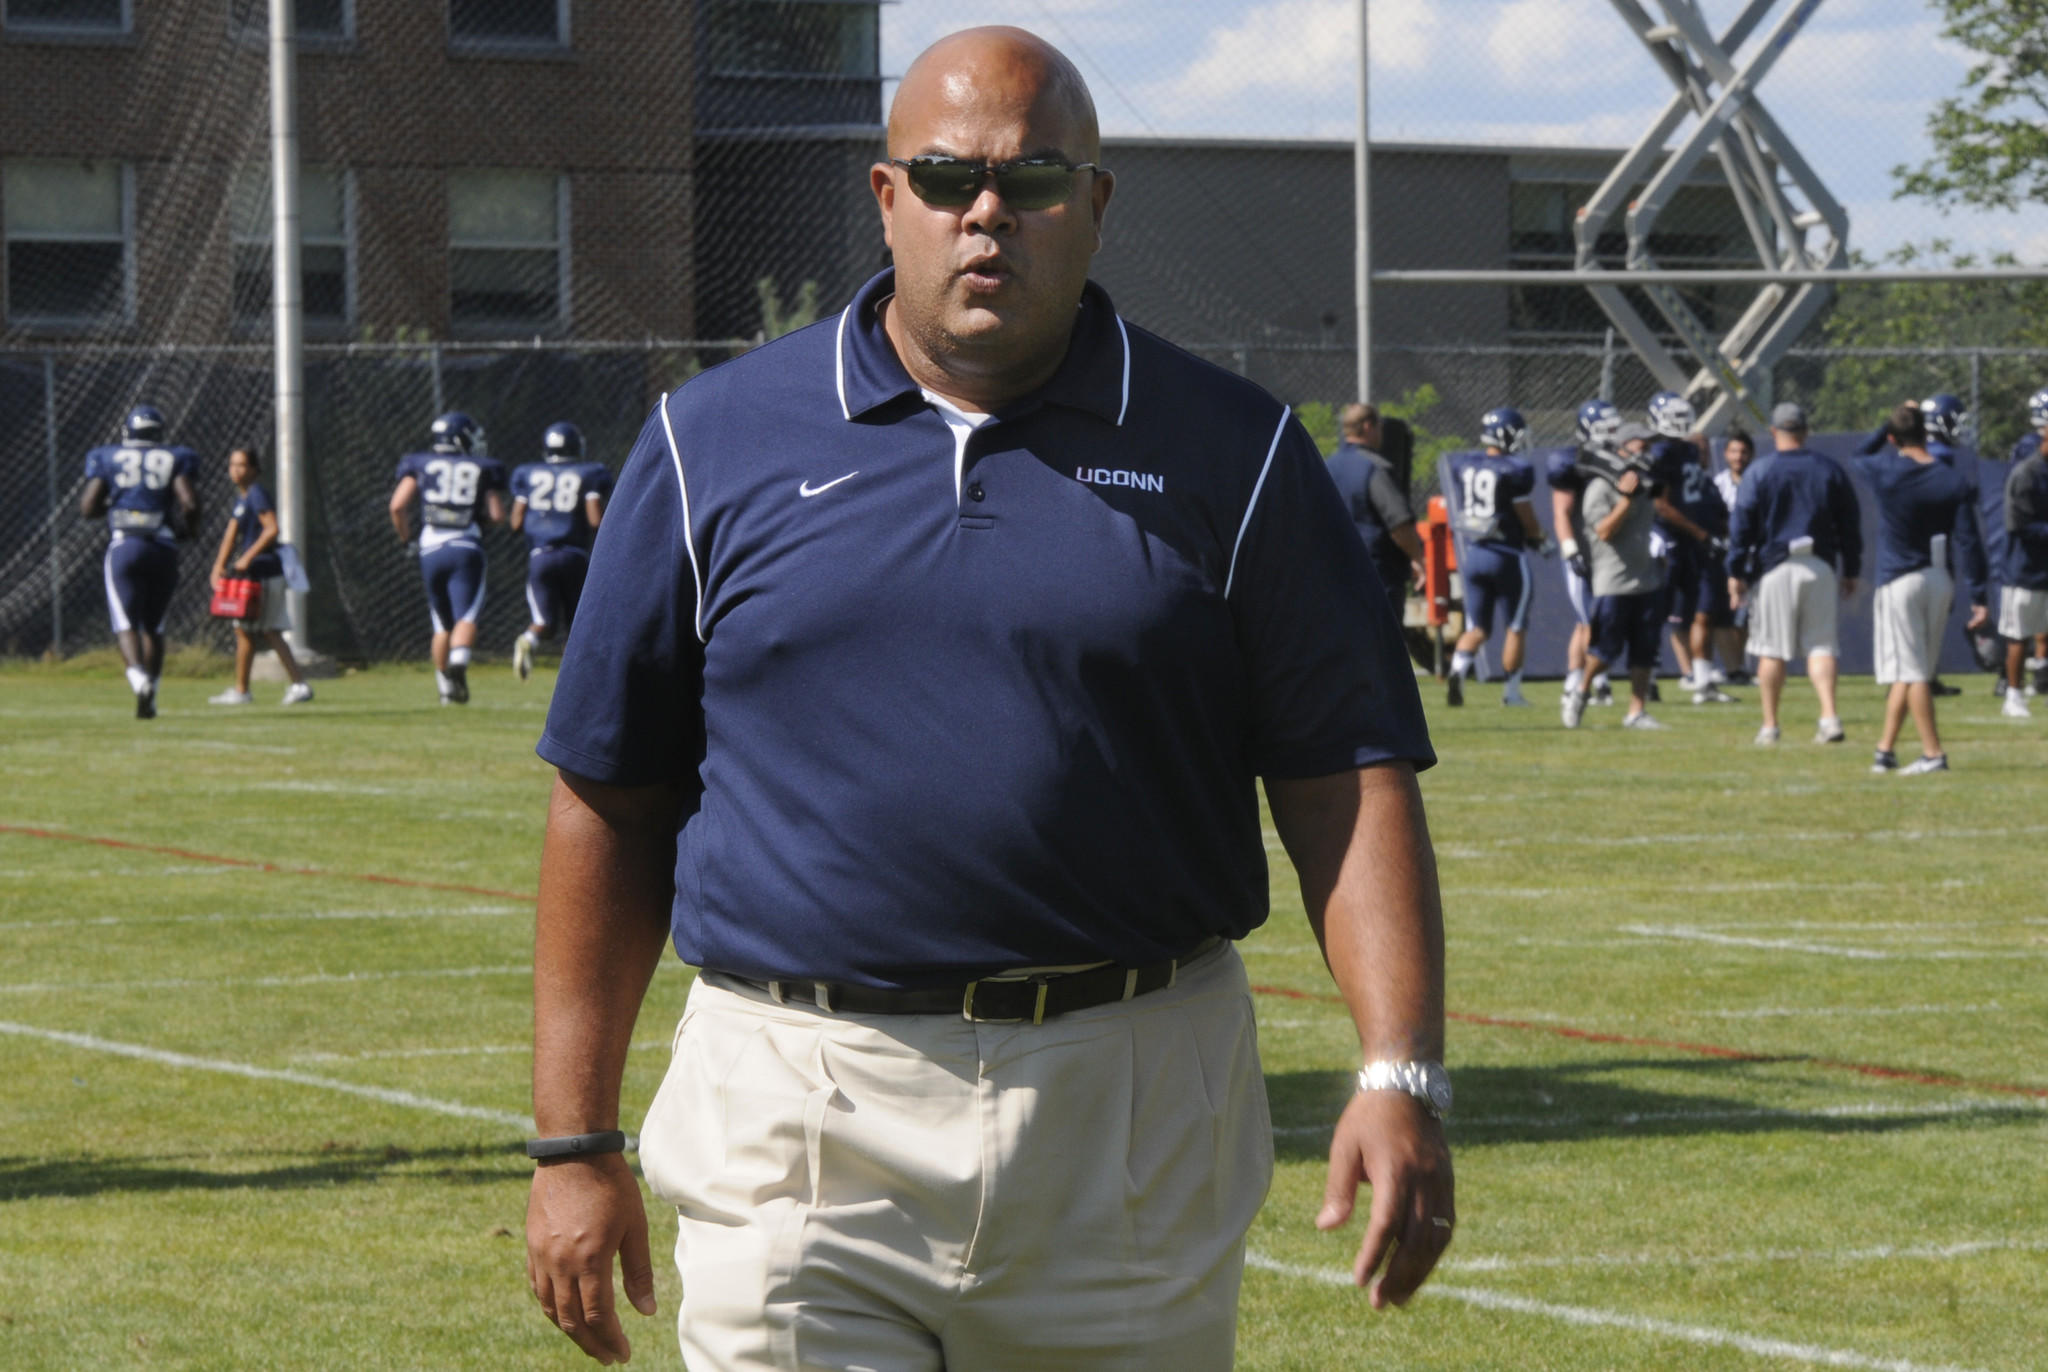 UConn athletic director Warde Manuel played football at the University of Michigan and says he never thought of himself as a school employee when he played.